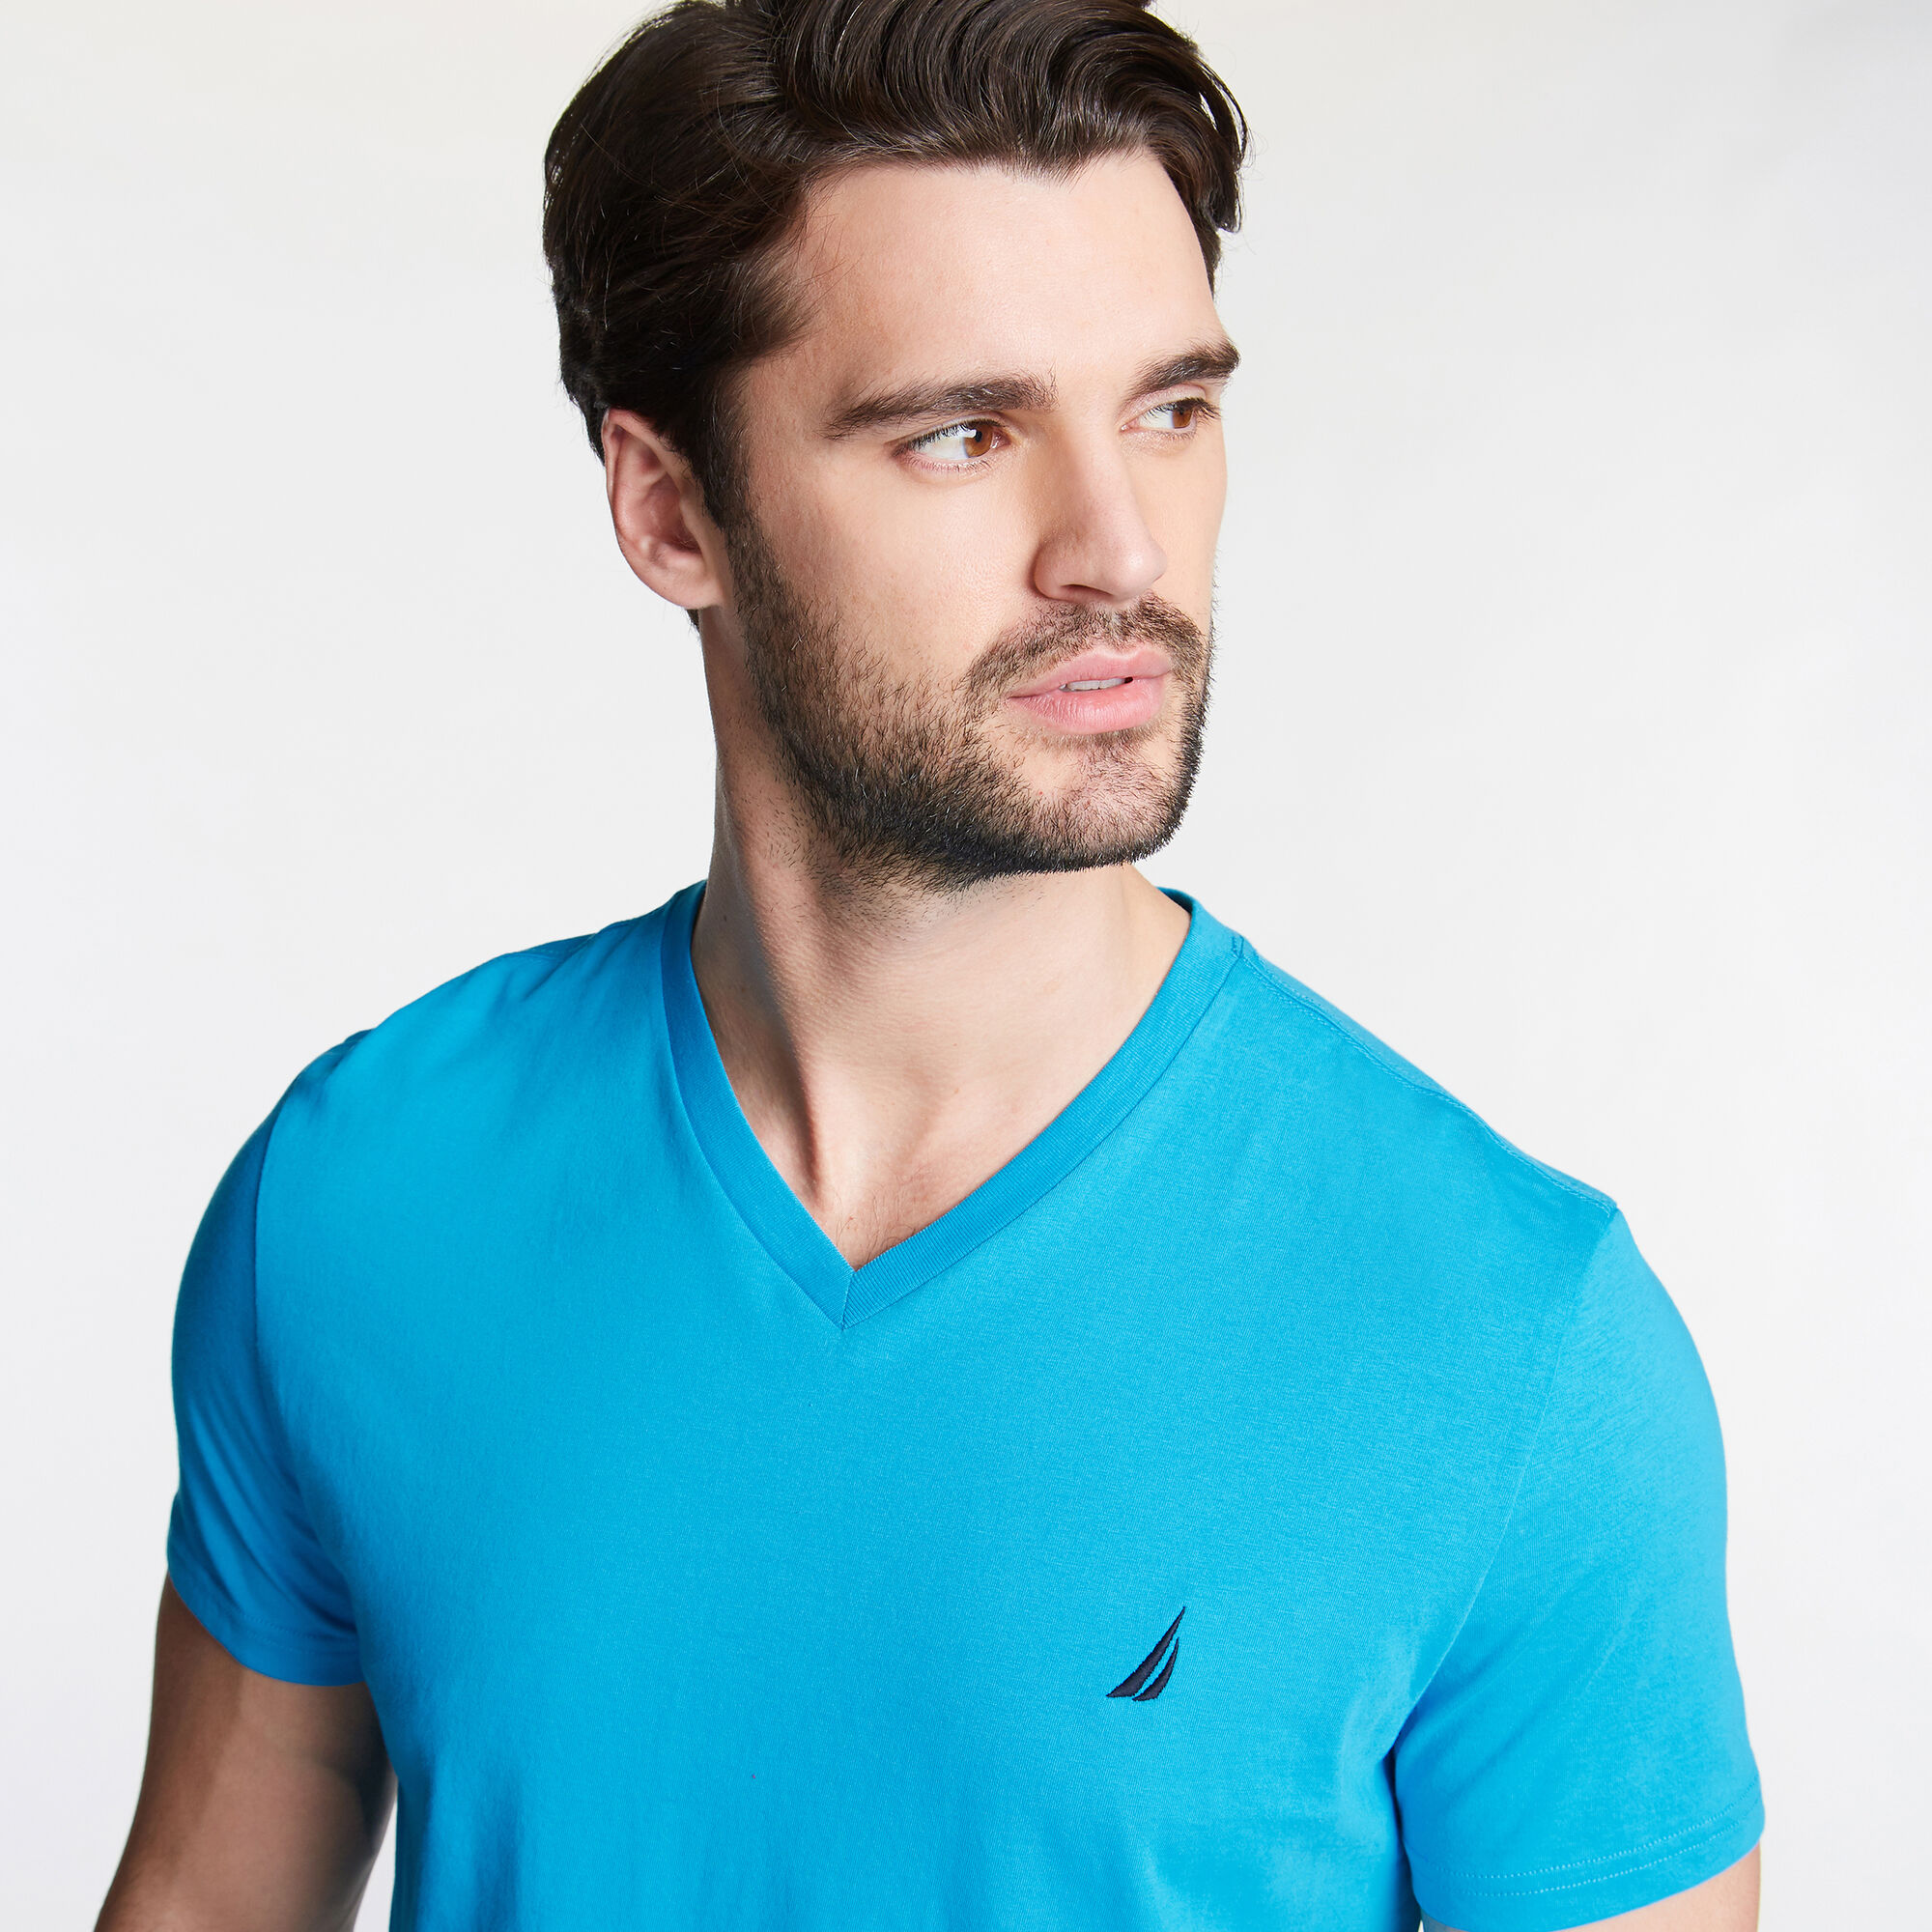 Nautica-Mens-V-Neck-Short-Sleeve-T-Shirt thumbnail 43